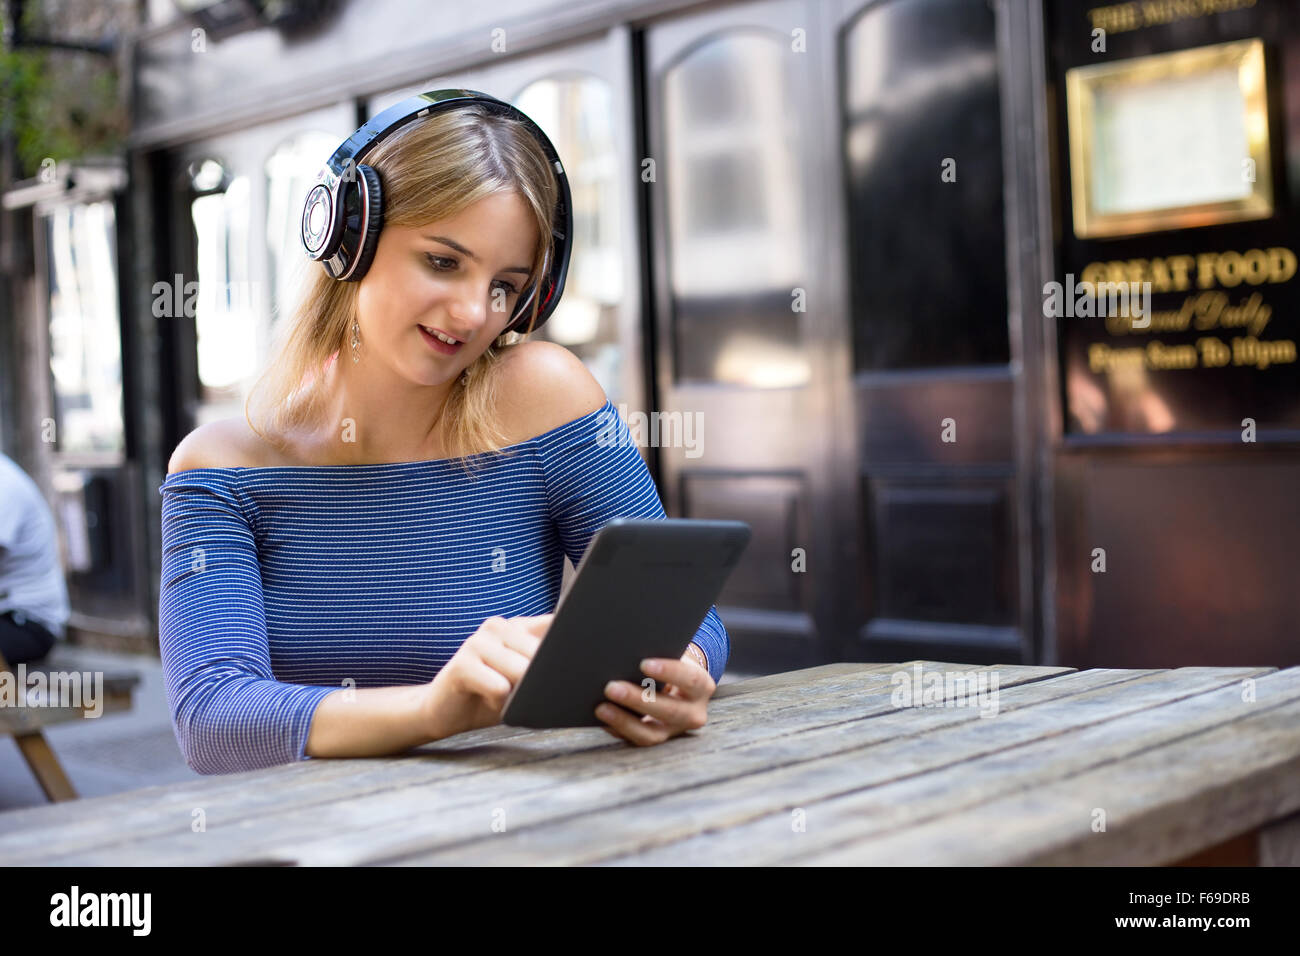 young woman wearing headphones and reading an ebook - Stock Image